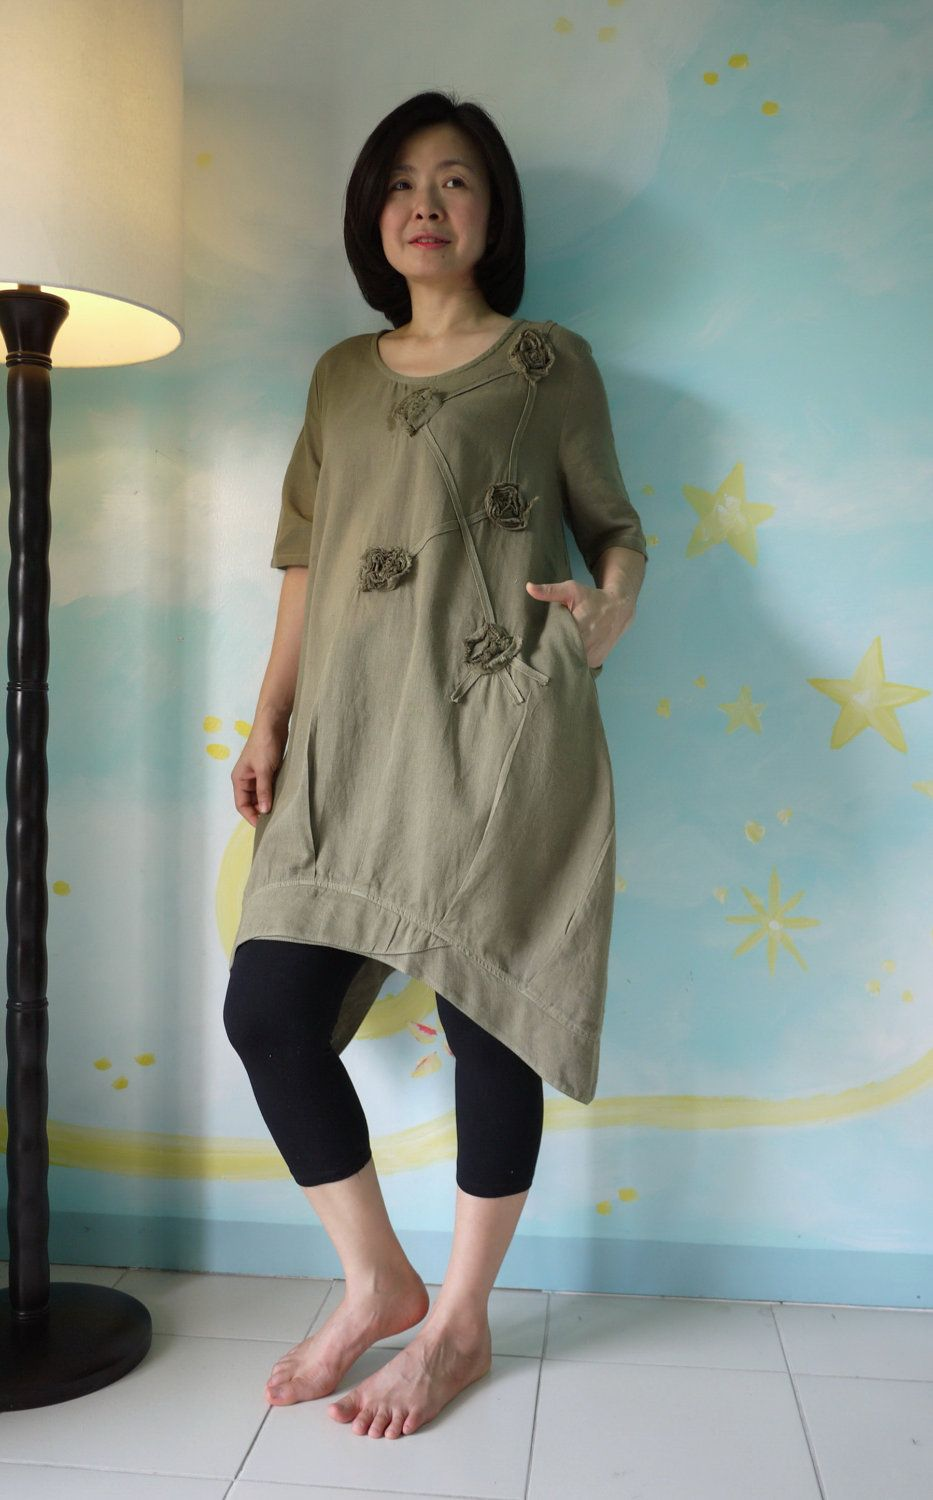 Funky Blossom...Floral Applique Hand-Dyed Olive Green Light Linen Mix Cotton Blouse Tunic Dress With Asymmetrical Hem. $52.00, via Etsy.